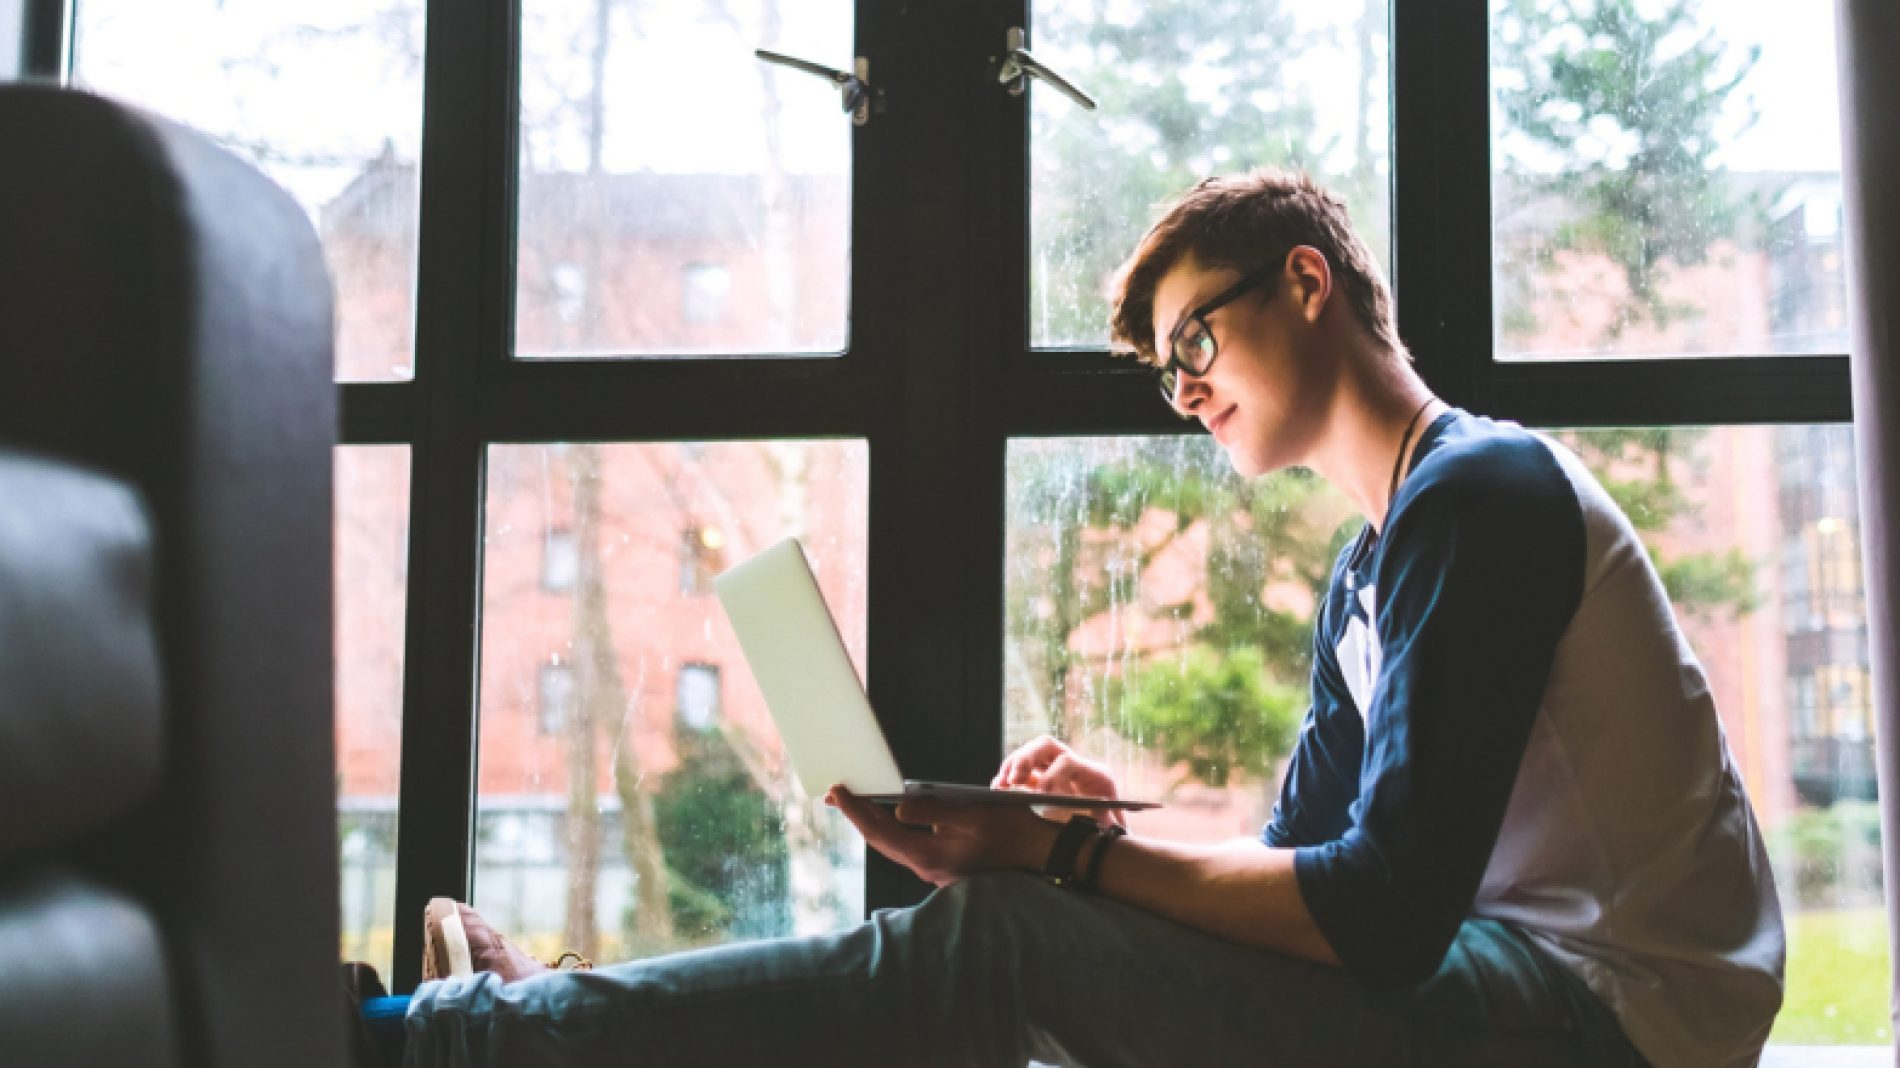 young-man-on-laptop-at-the-window-WWVmdt